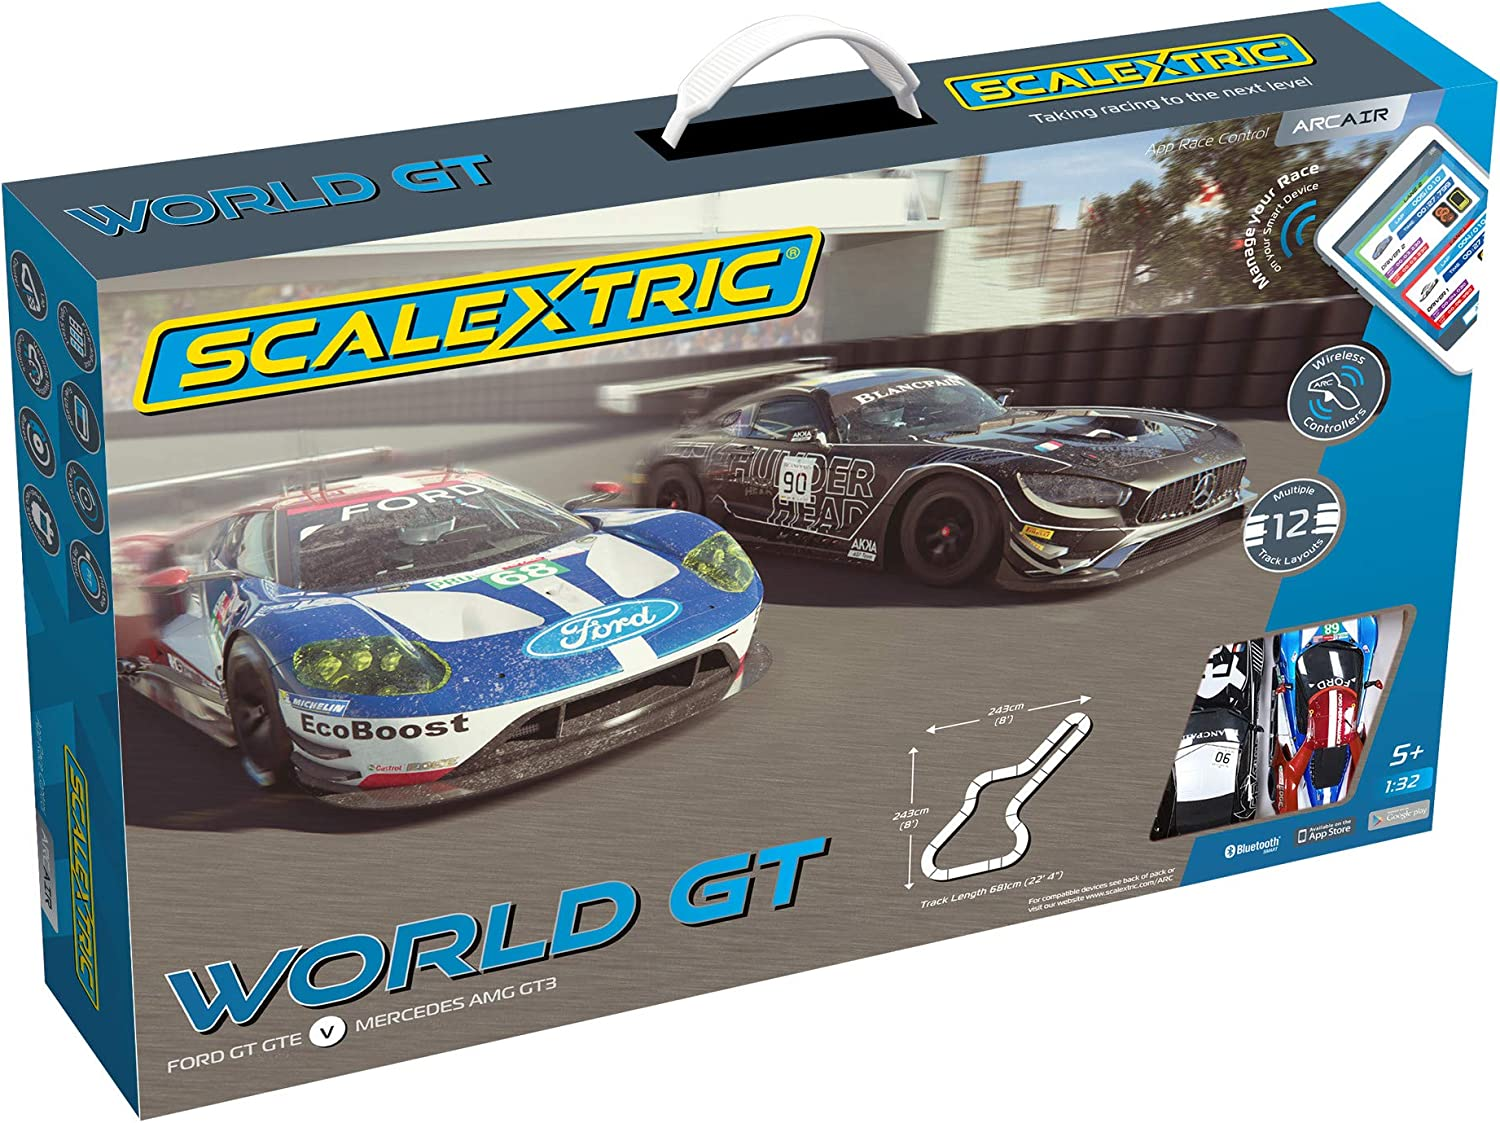 Scalextric App Race Control ARC Air World GT Mercedes AMG GT3 vs Ford GT GTE 1:32 Analog Slot Car Race Track Set C1403T